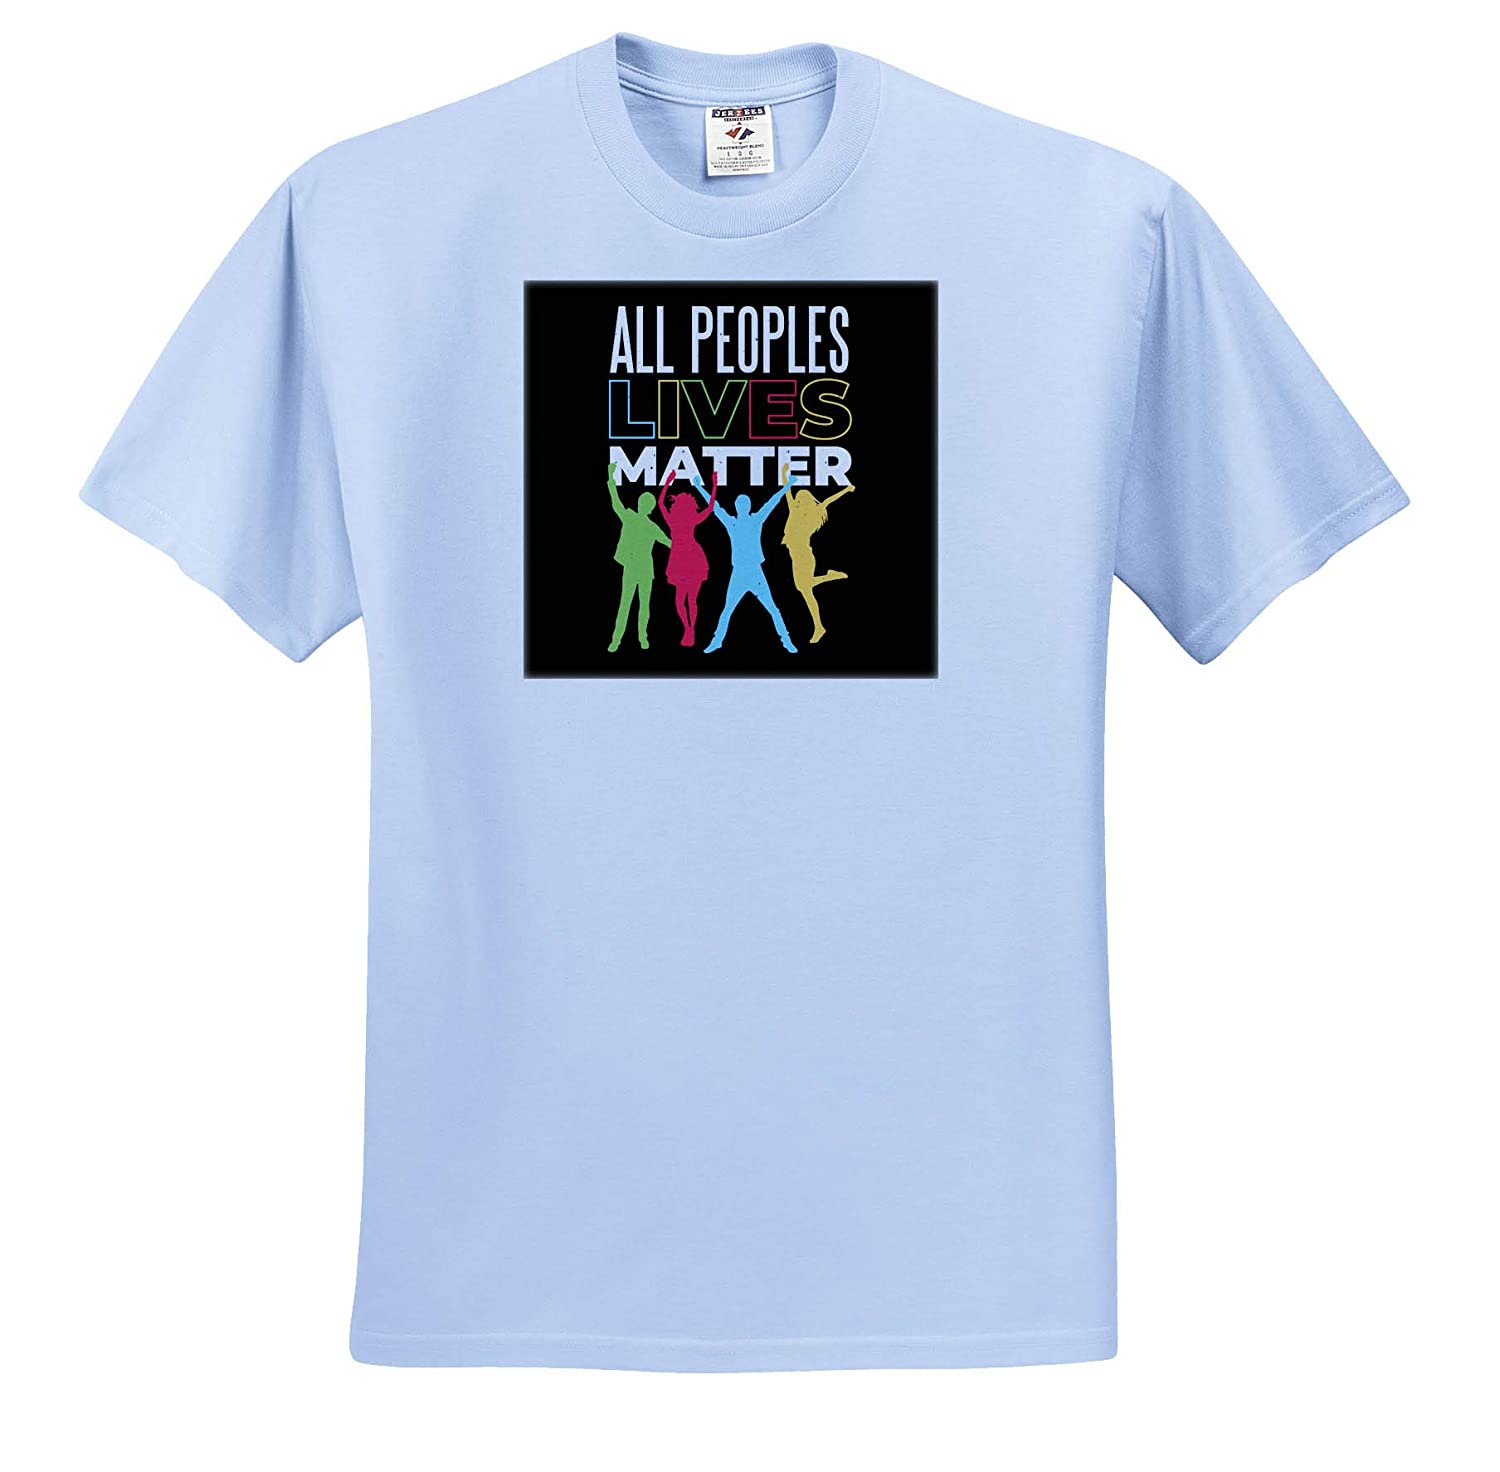 3dRose Sven Herkenrath Quotes ts/_319030 All People Lives Matter Funny Quotes Saying Adult T-Shirt XL